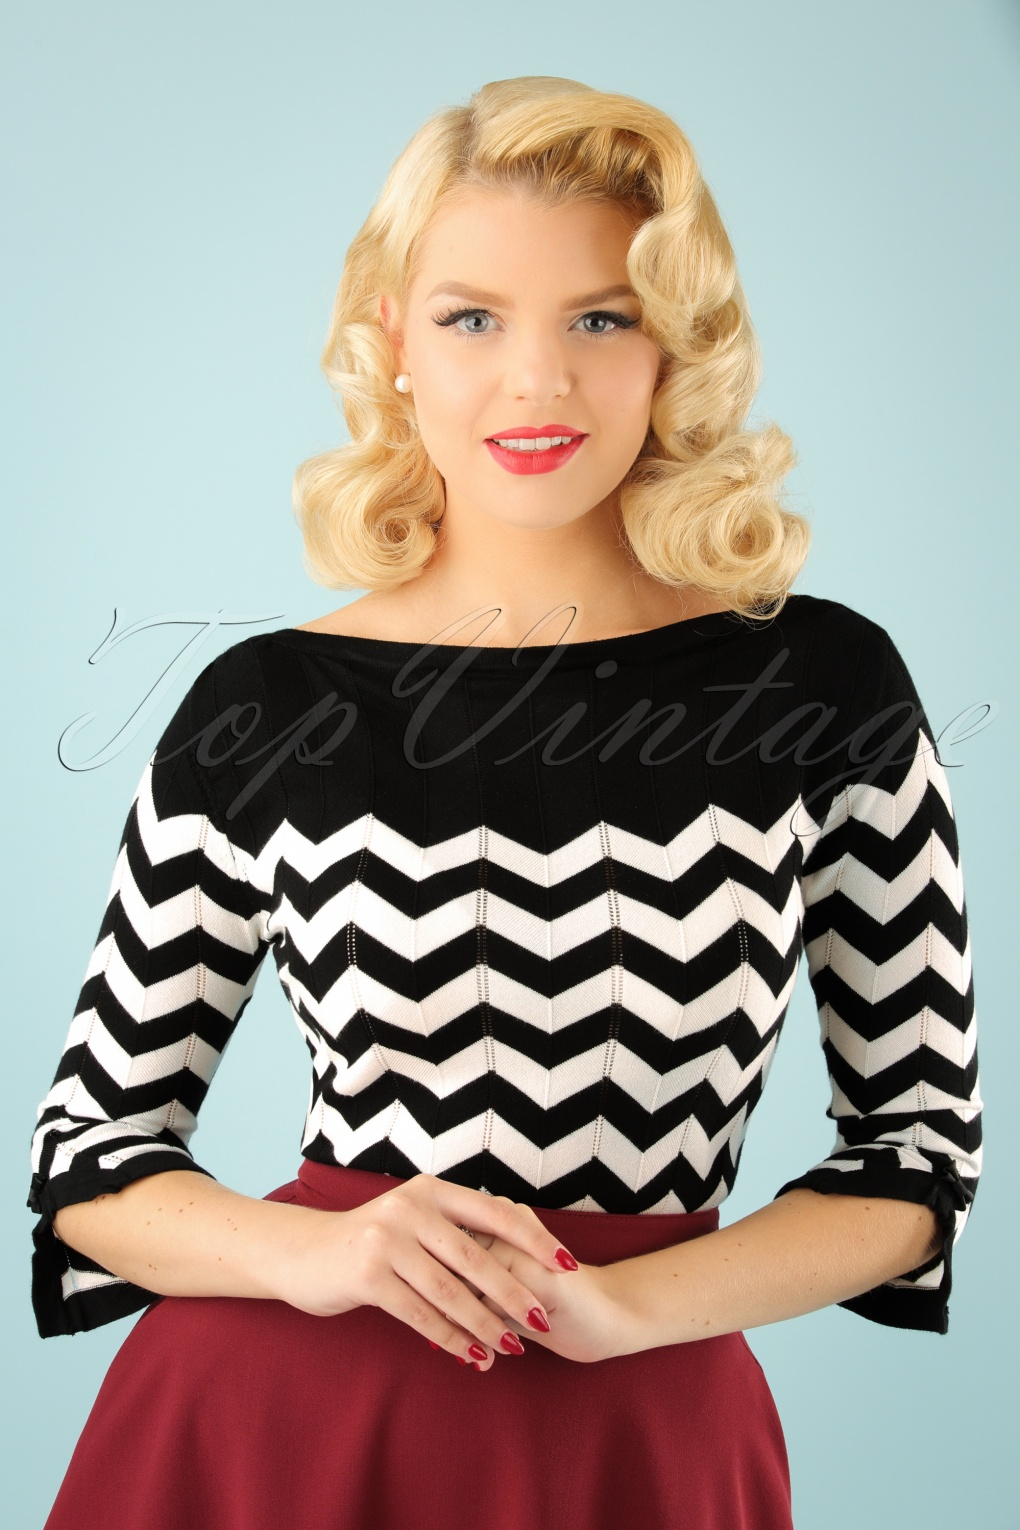 Vintage & Retro Shirts, Halter Tops, Blouses 60s Vanilla Top in Black and White £38.18 AT vintagedancer.com